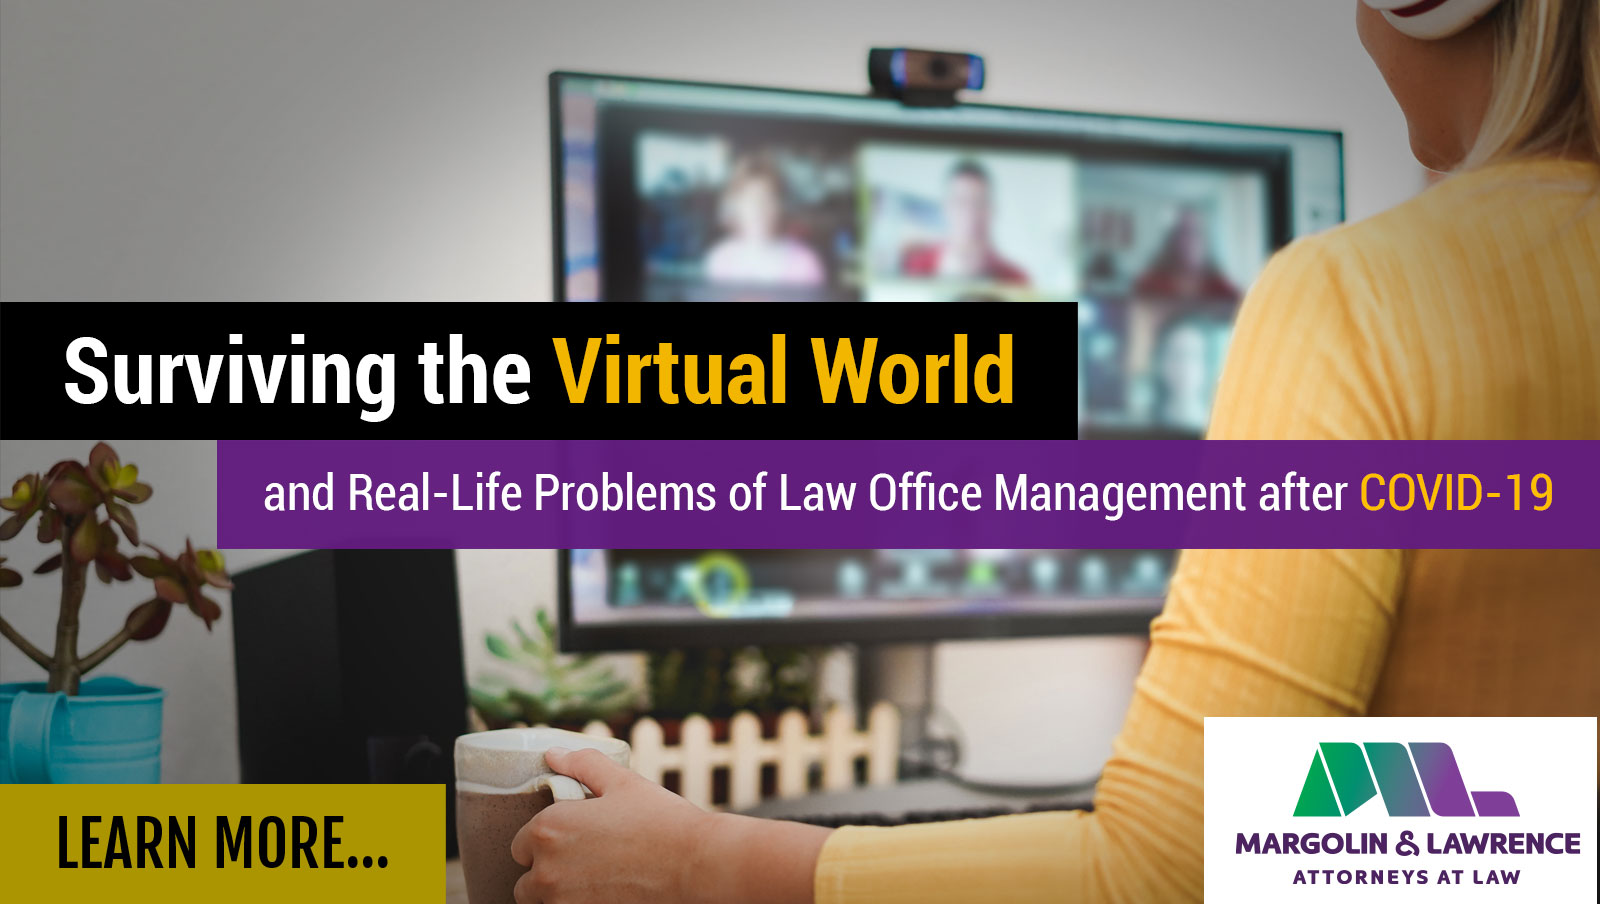 Surviving the Virtual World after COVID-19